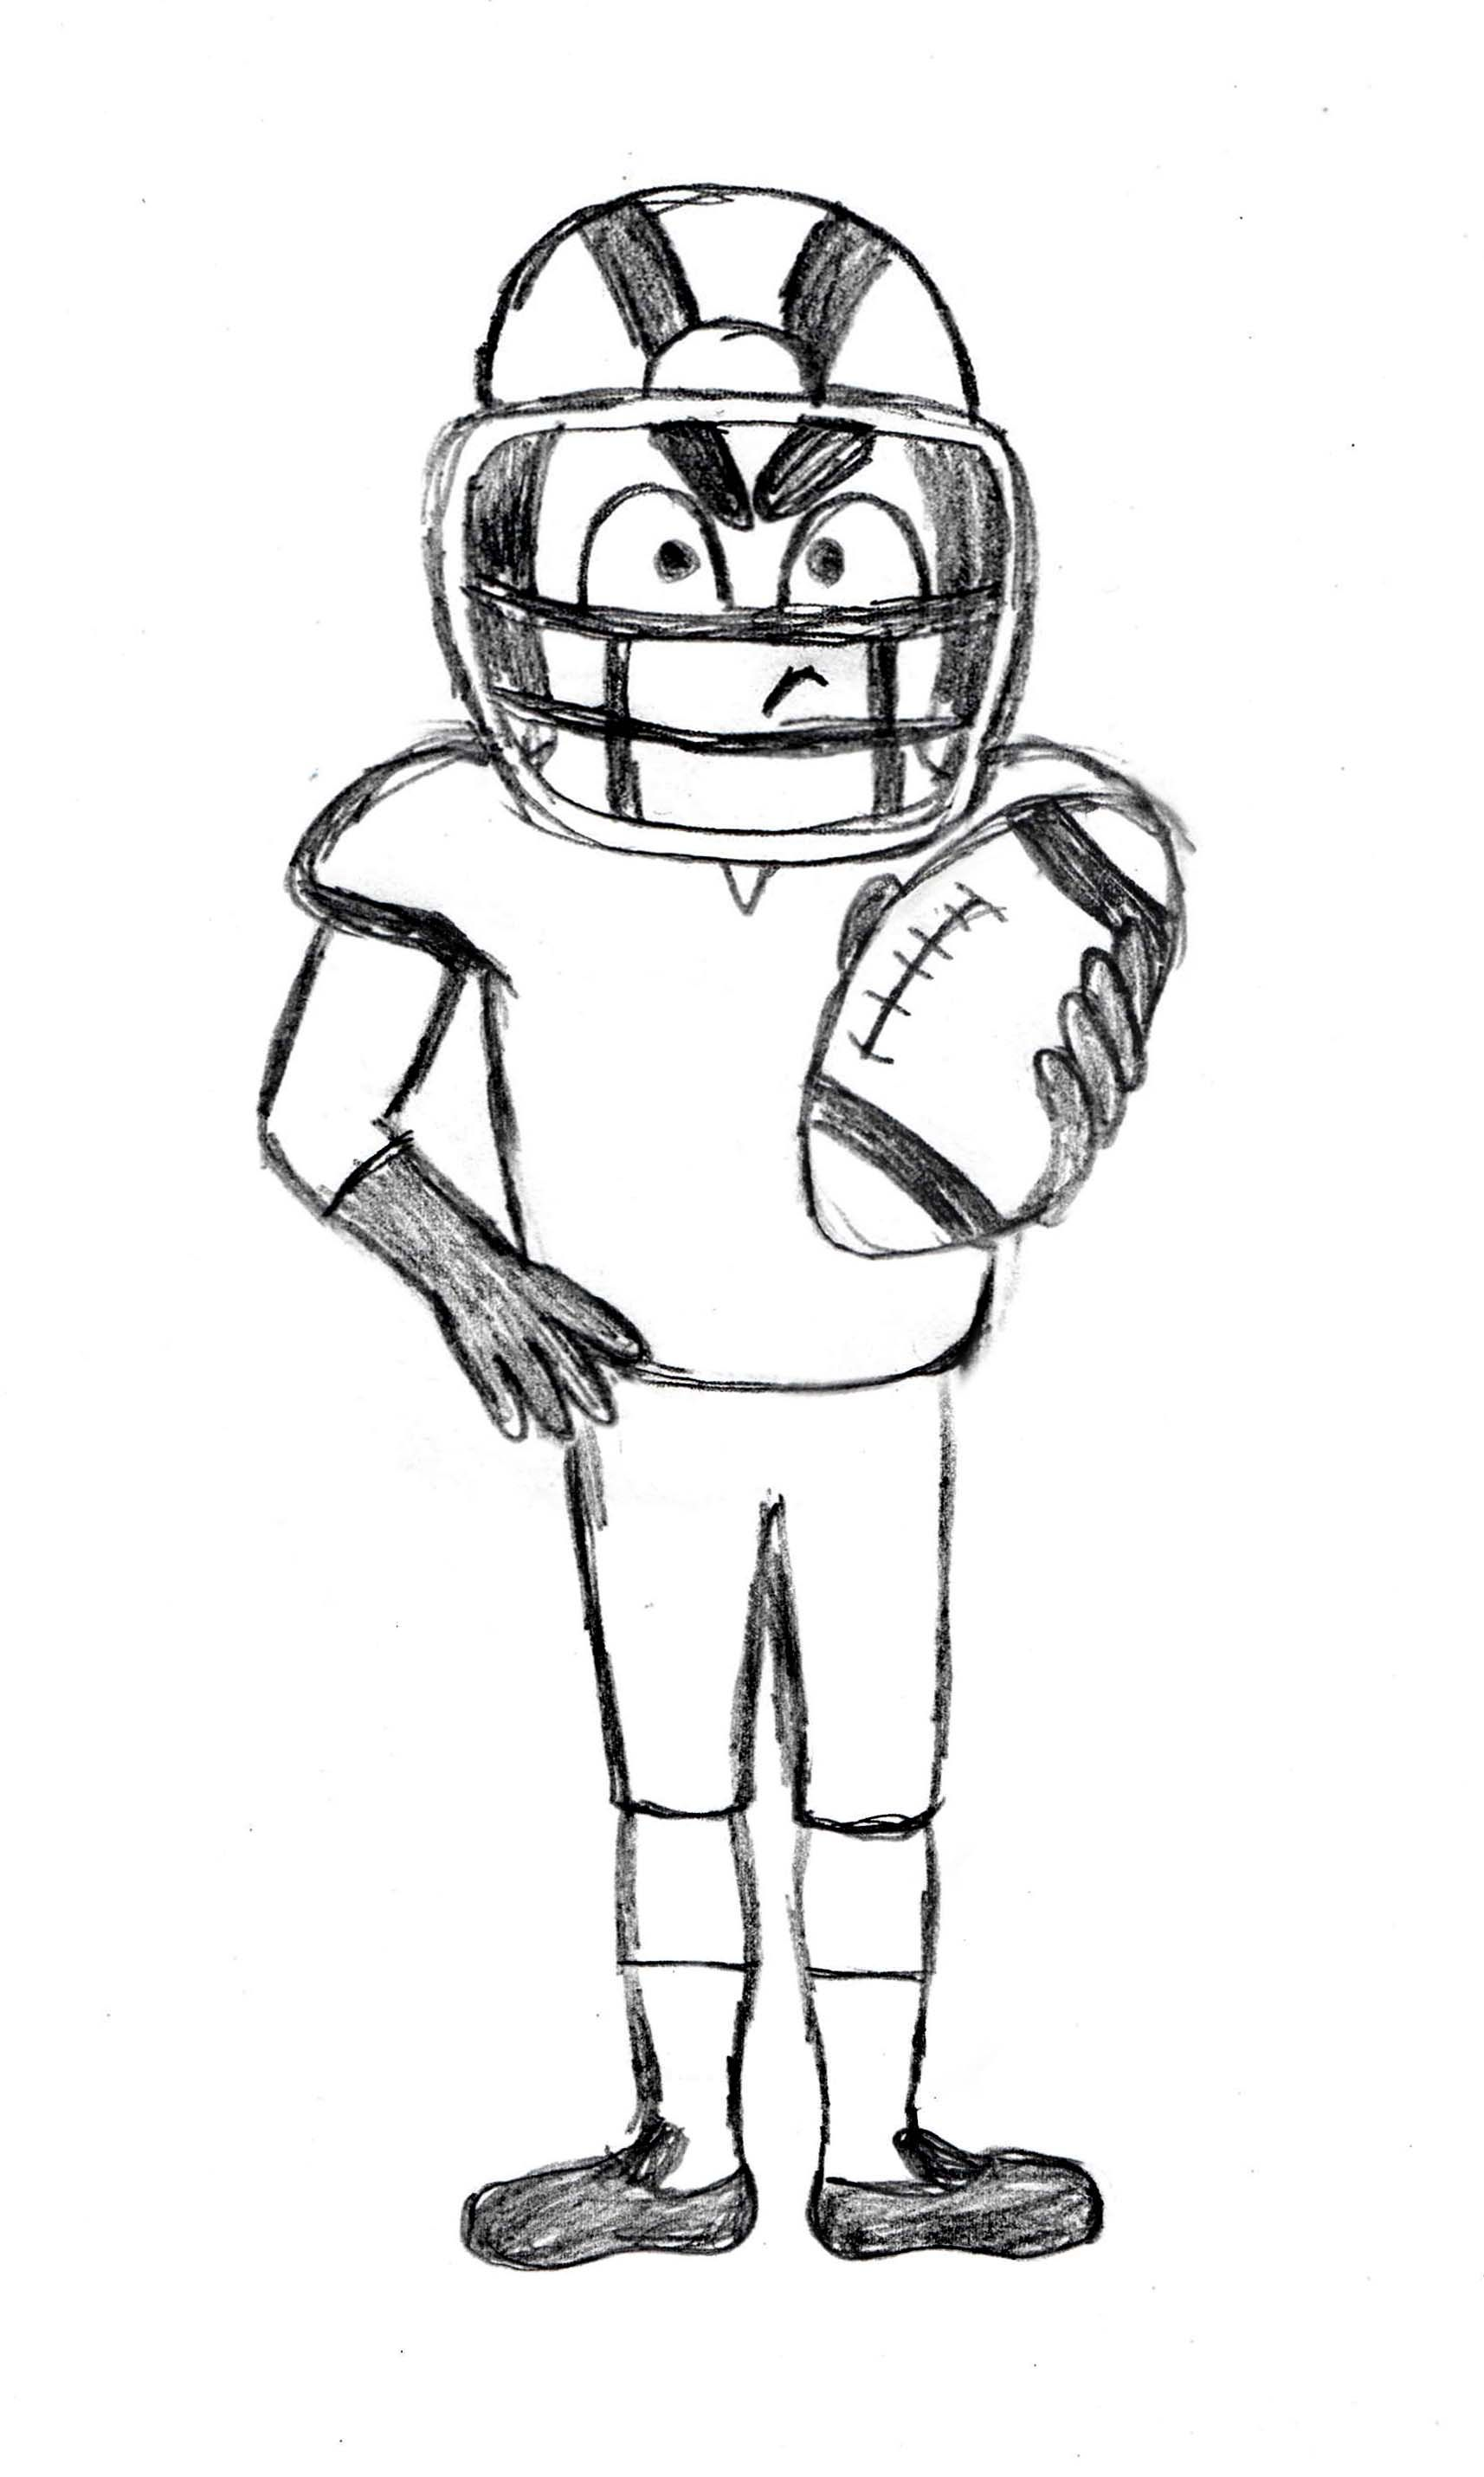 American Football Player Sketch Http Drawingmanuals Com Manual Football Player Drawing Tut Football Player Drawing American Football Players Football Drawing